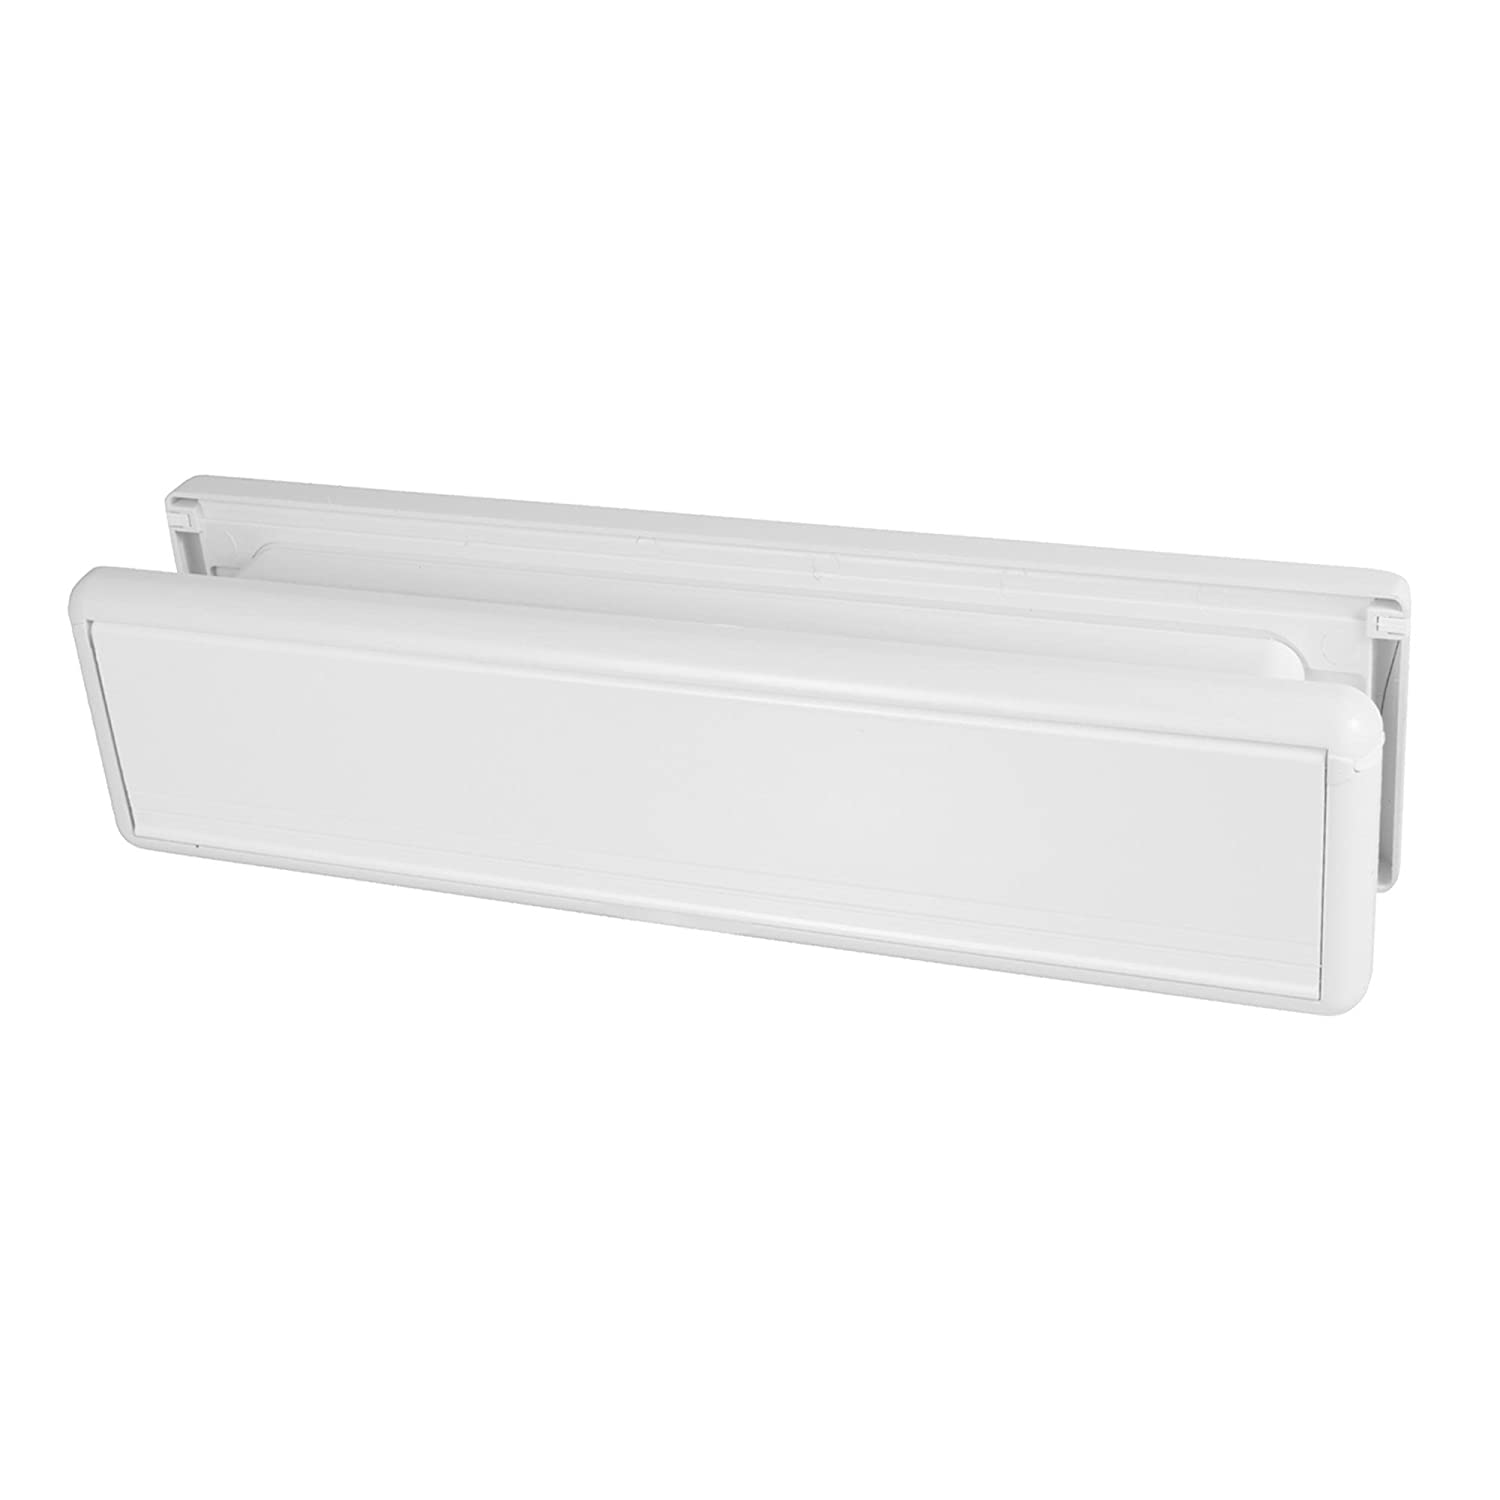 Paddock HS3755 10-Inch Letterbox with Surround for UPVC Doors - White Home Secure